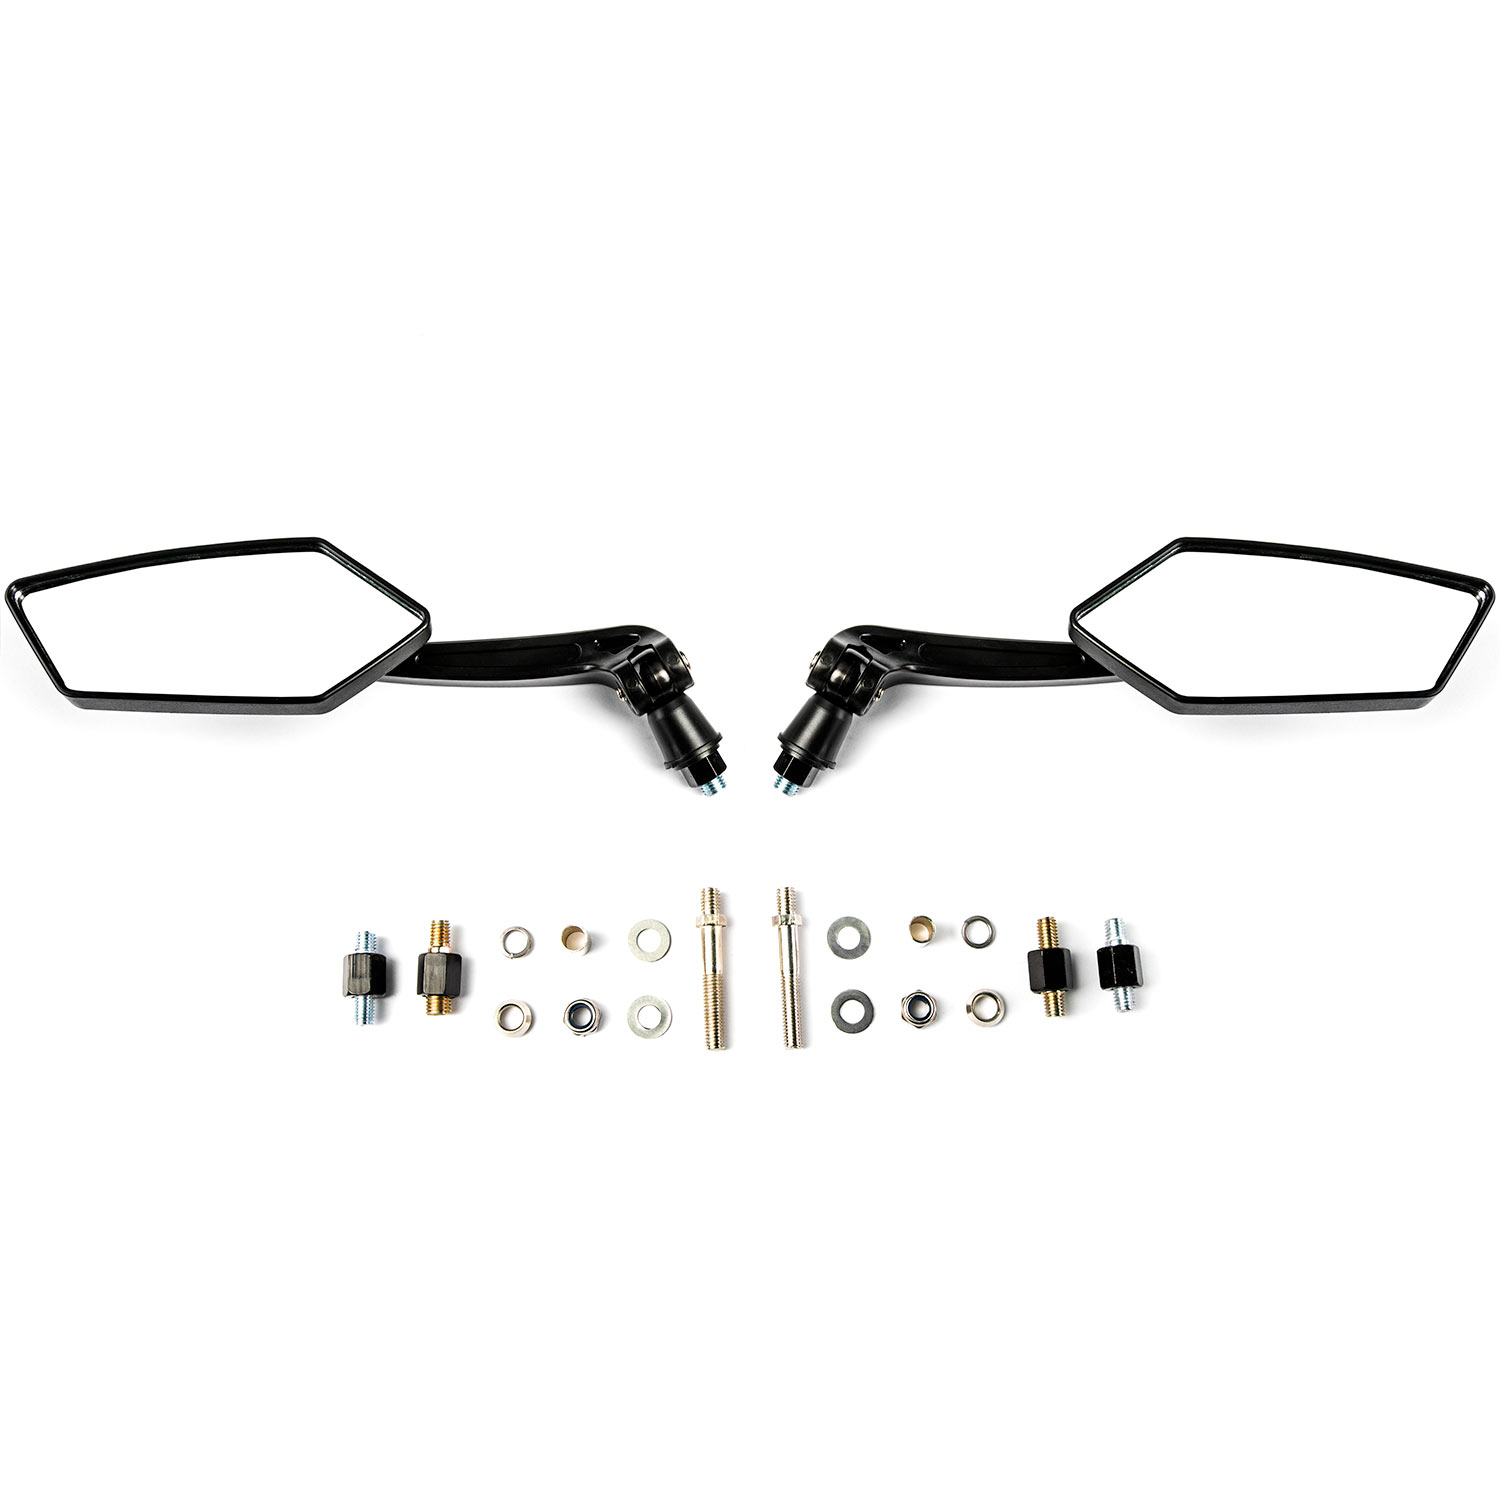 Custom Rear View Mirrors Black Pair w/Adapters For Yamaha YZFR6 R6S YZF R6 - image 3 of 4